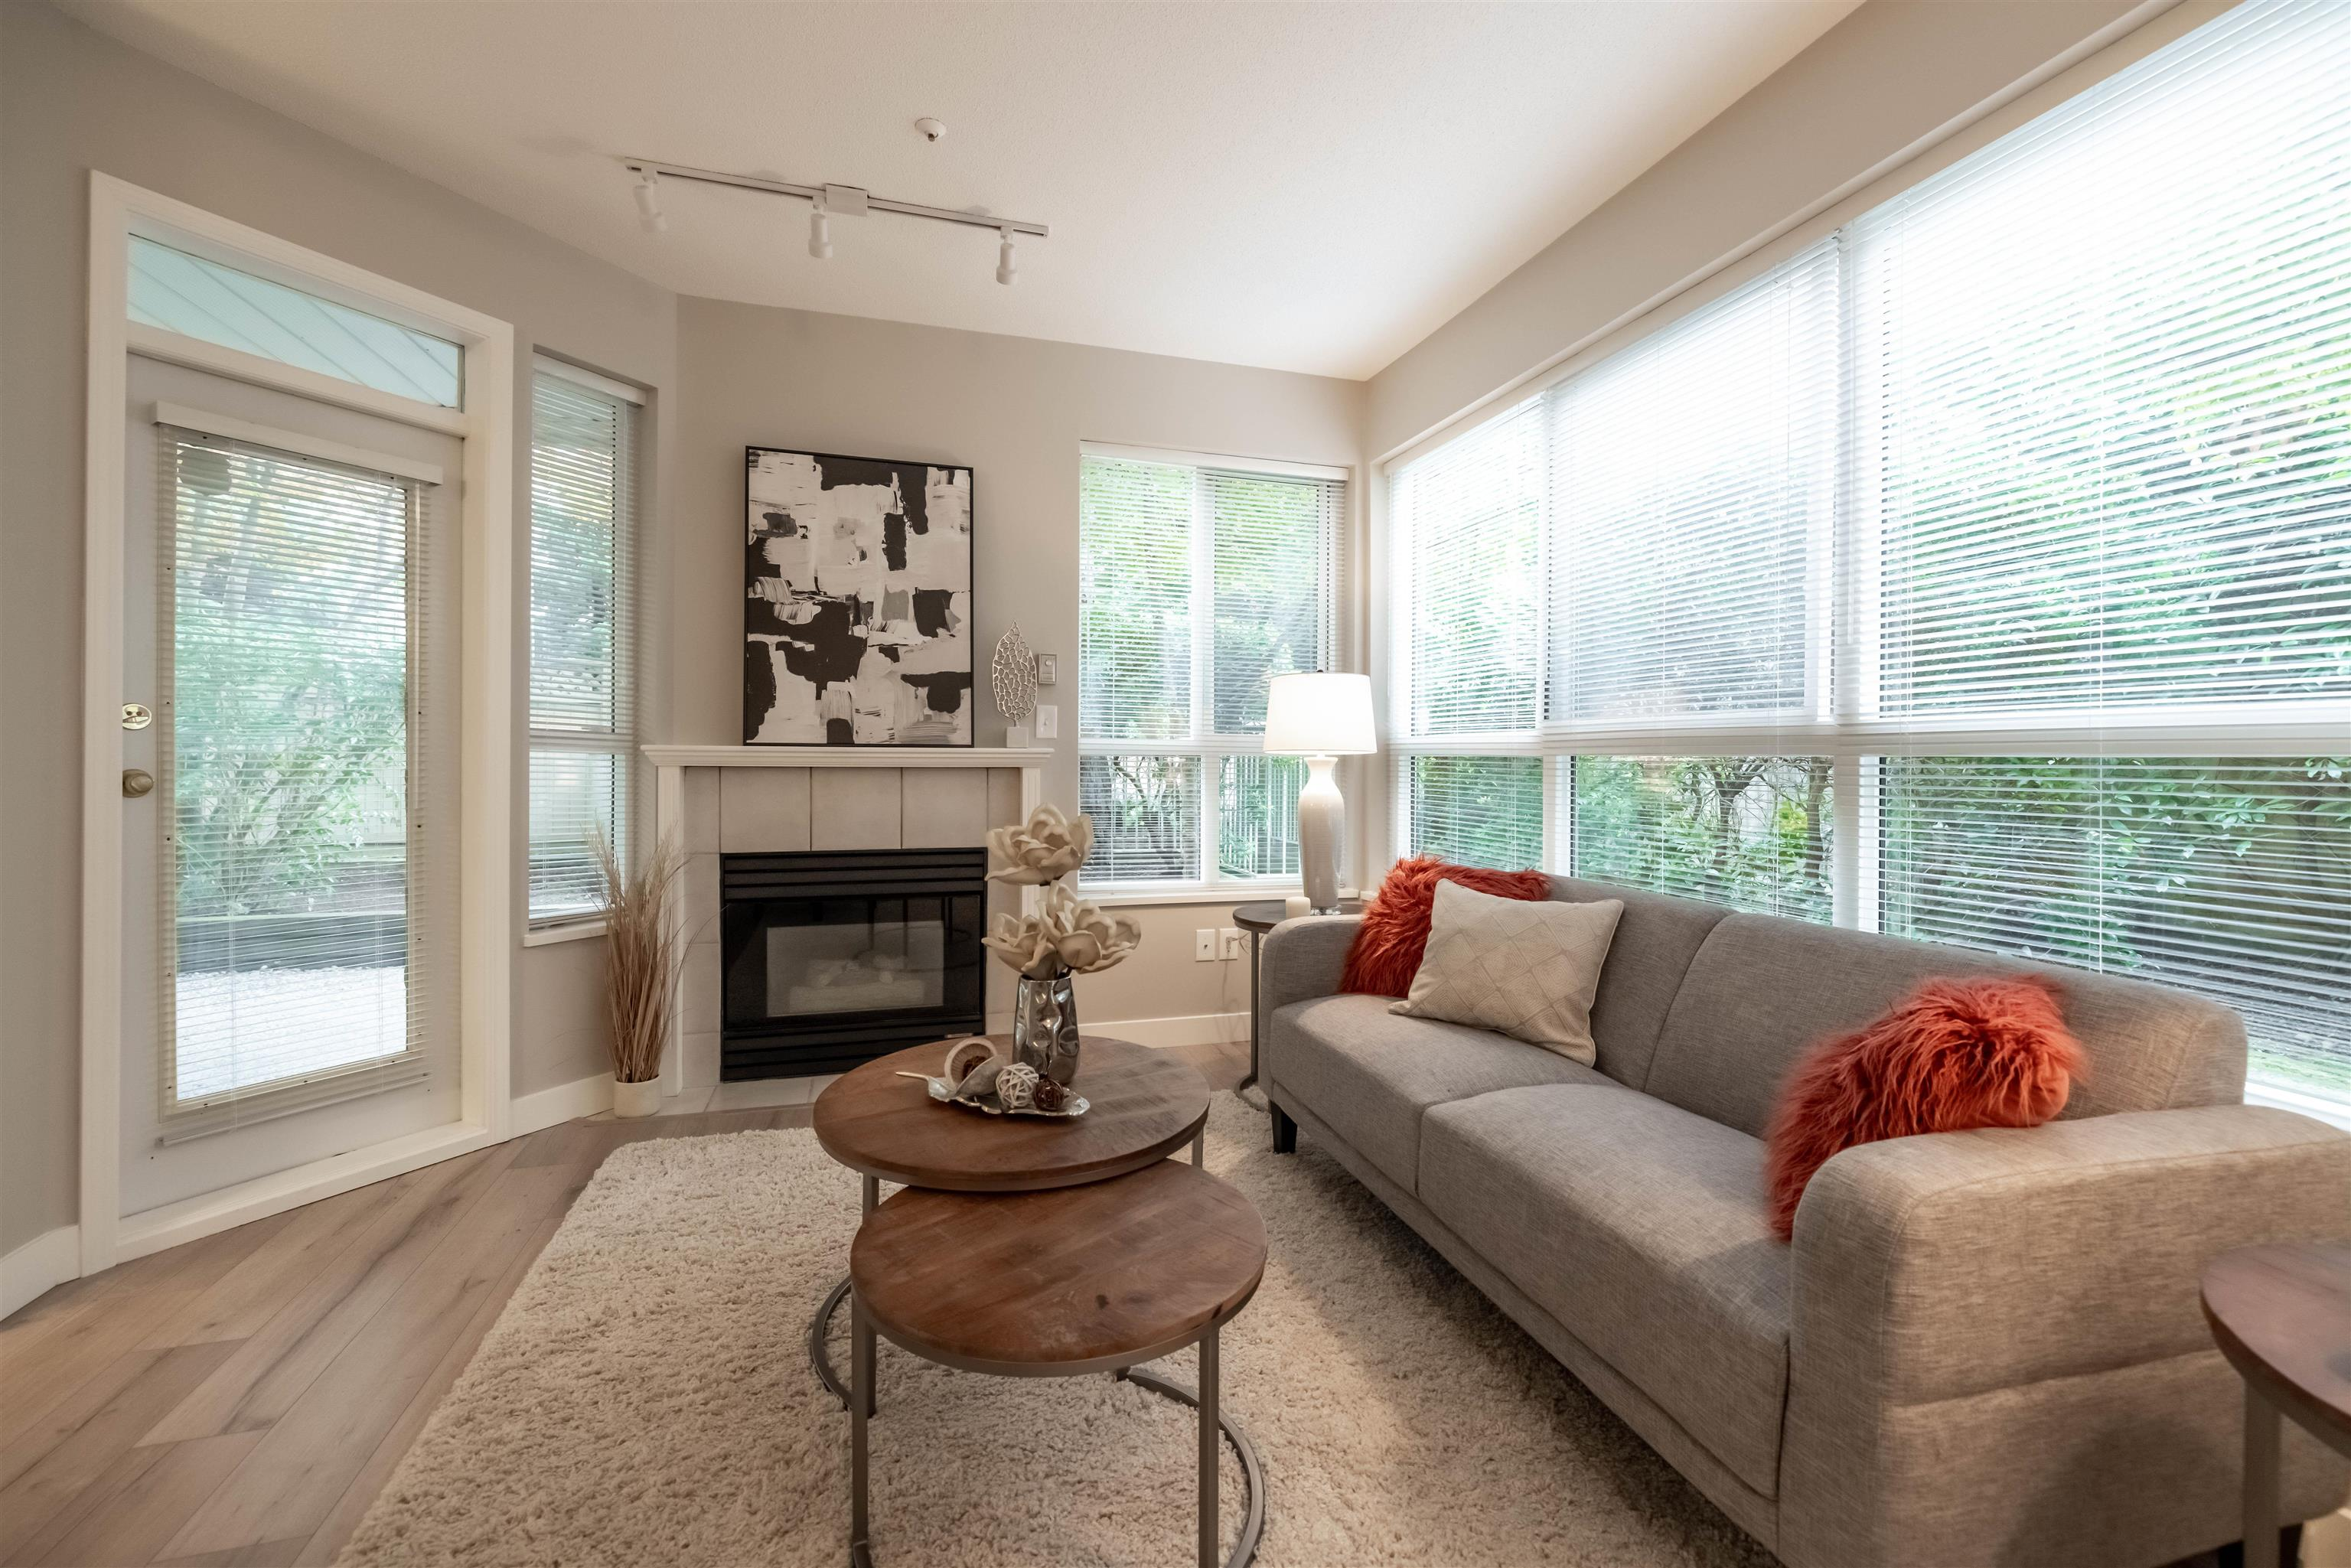 105 8139 121A STREET - Queen Mary Park Surrey Apartment/Condo for sale, 2 Bedrooms (R2623168) - #8